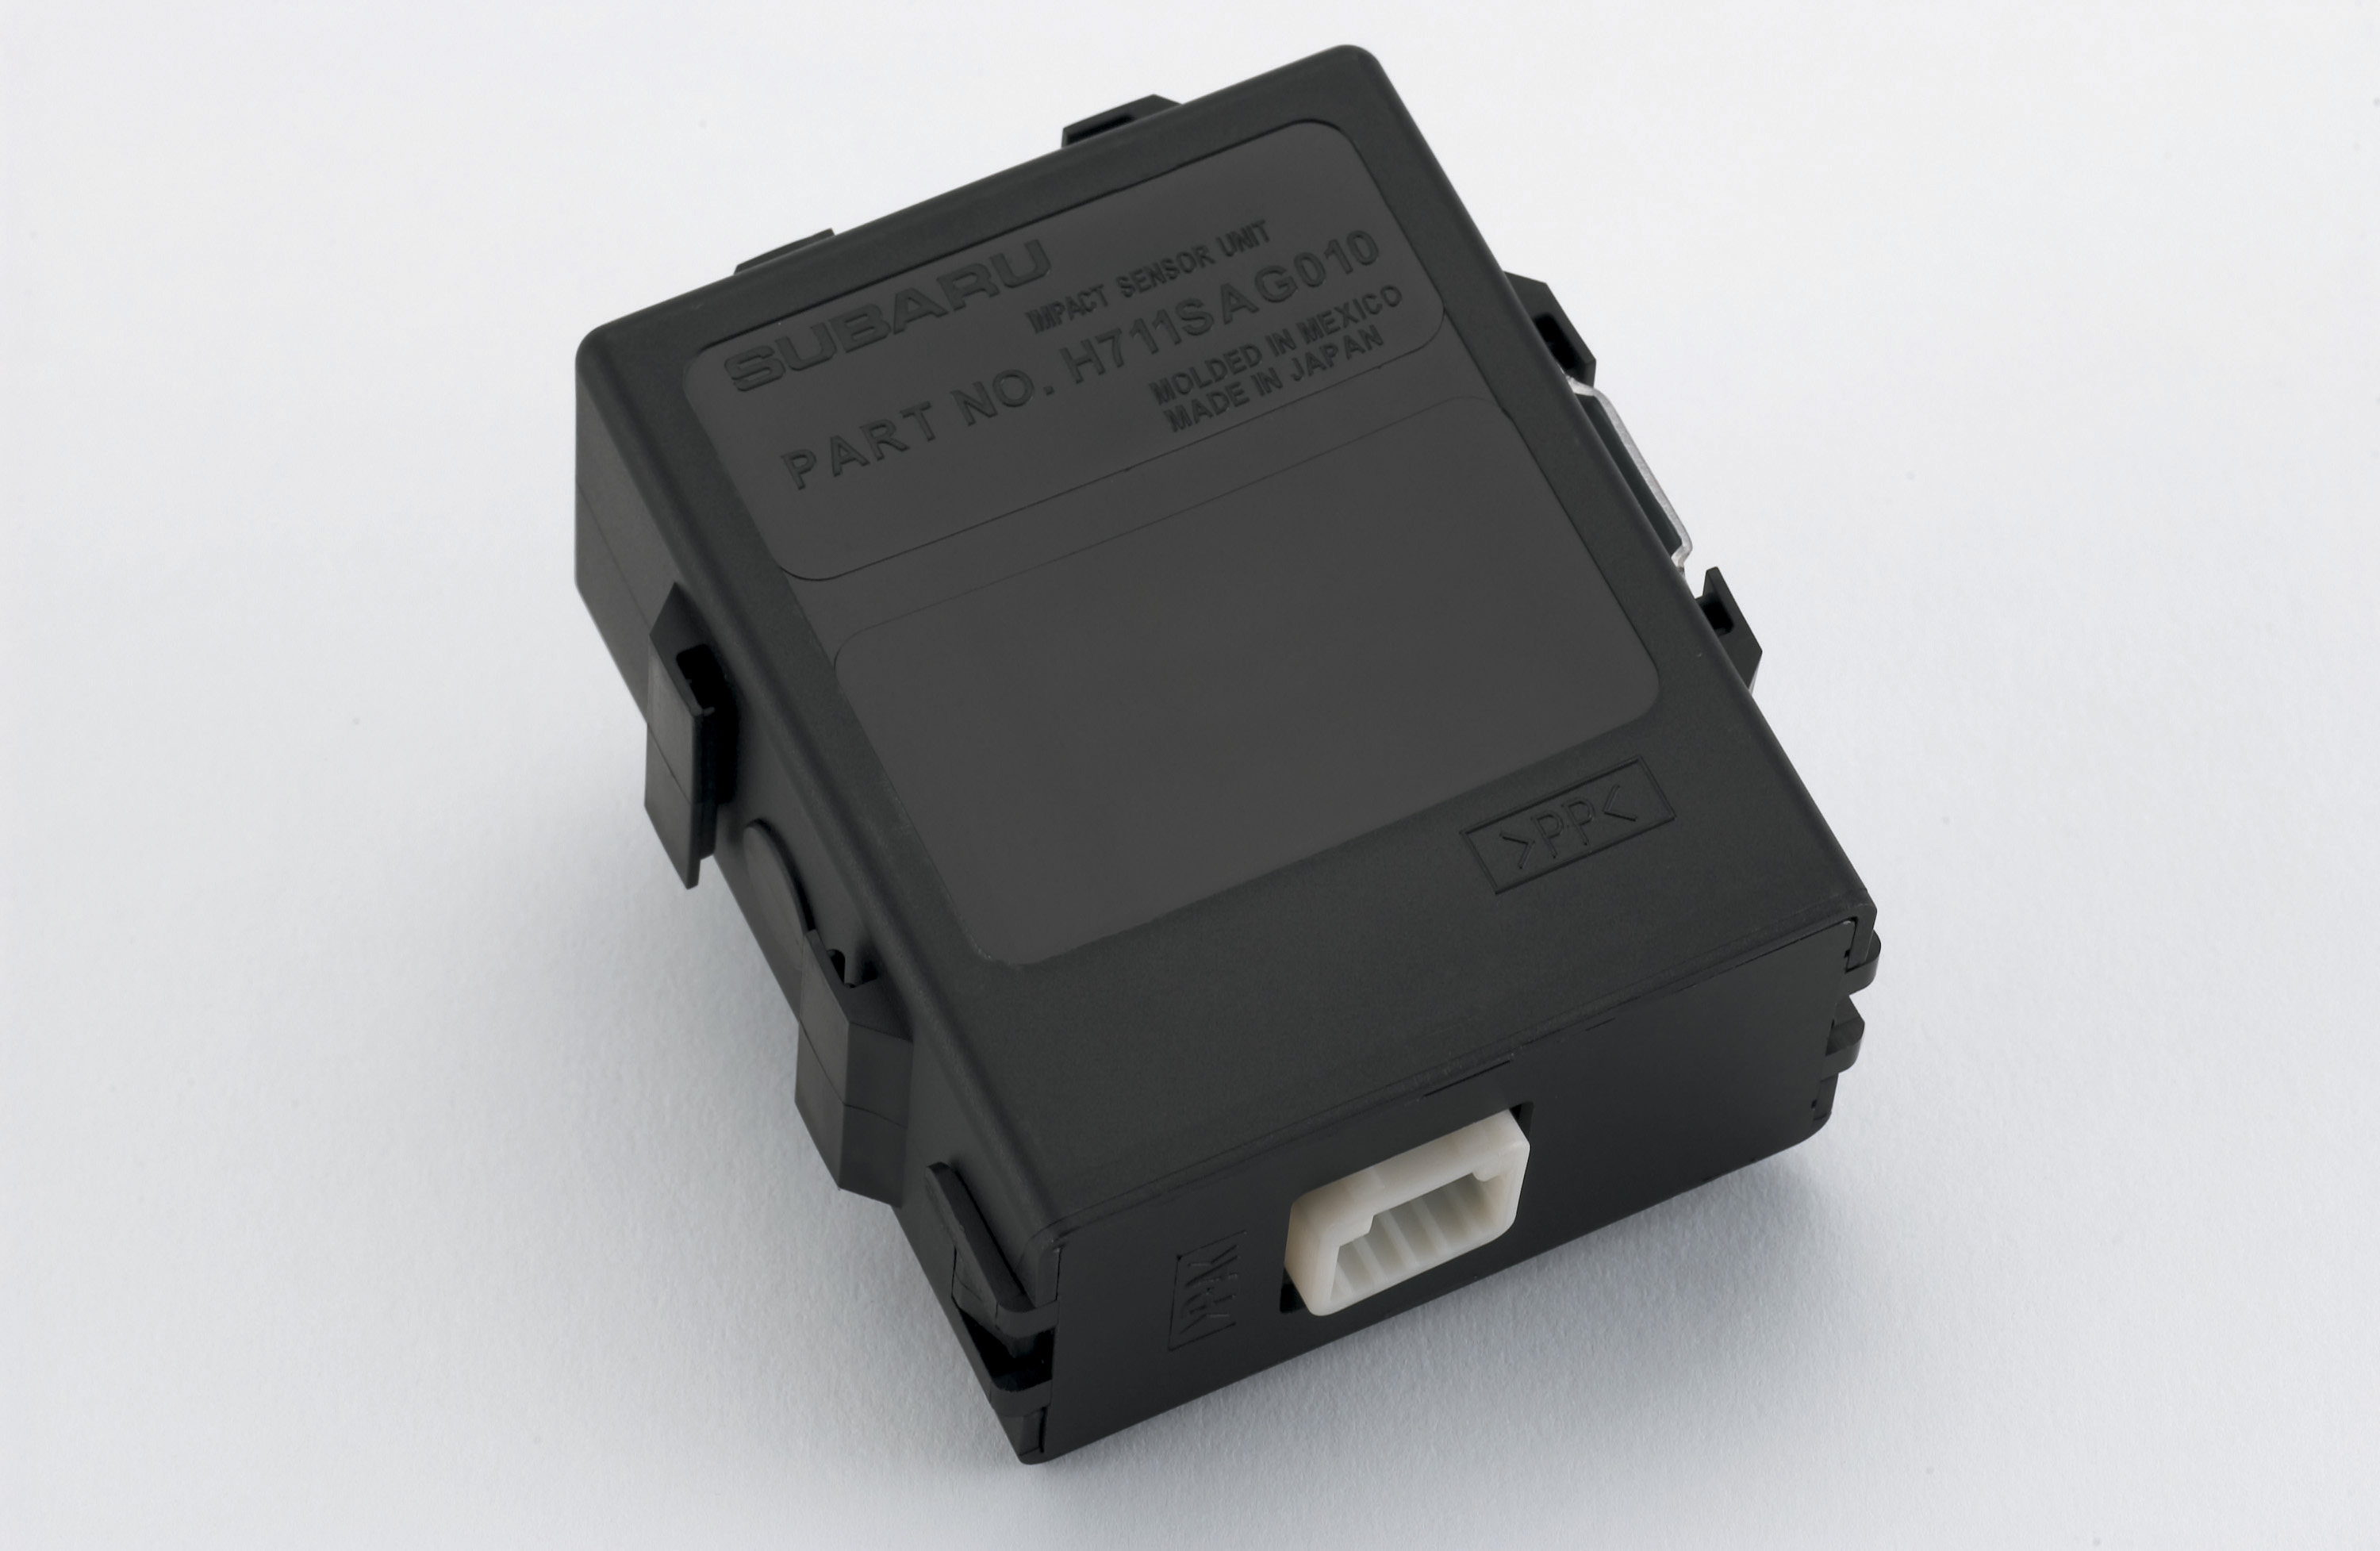 H7110FS201 Product Image